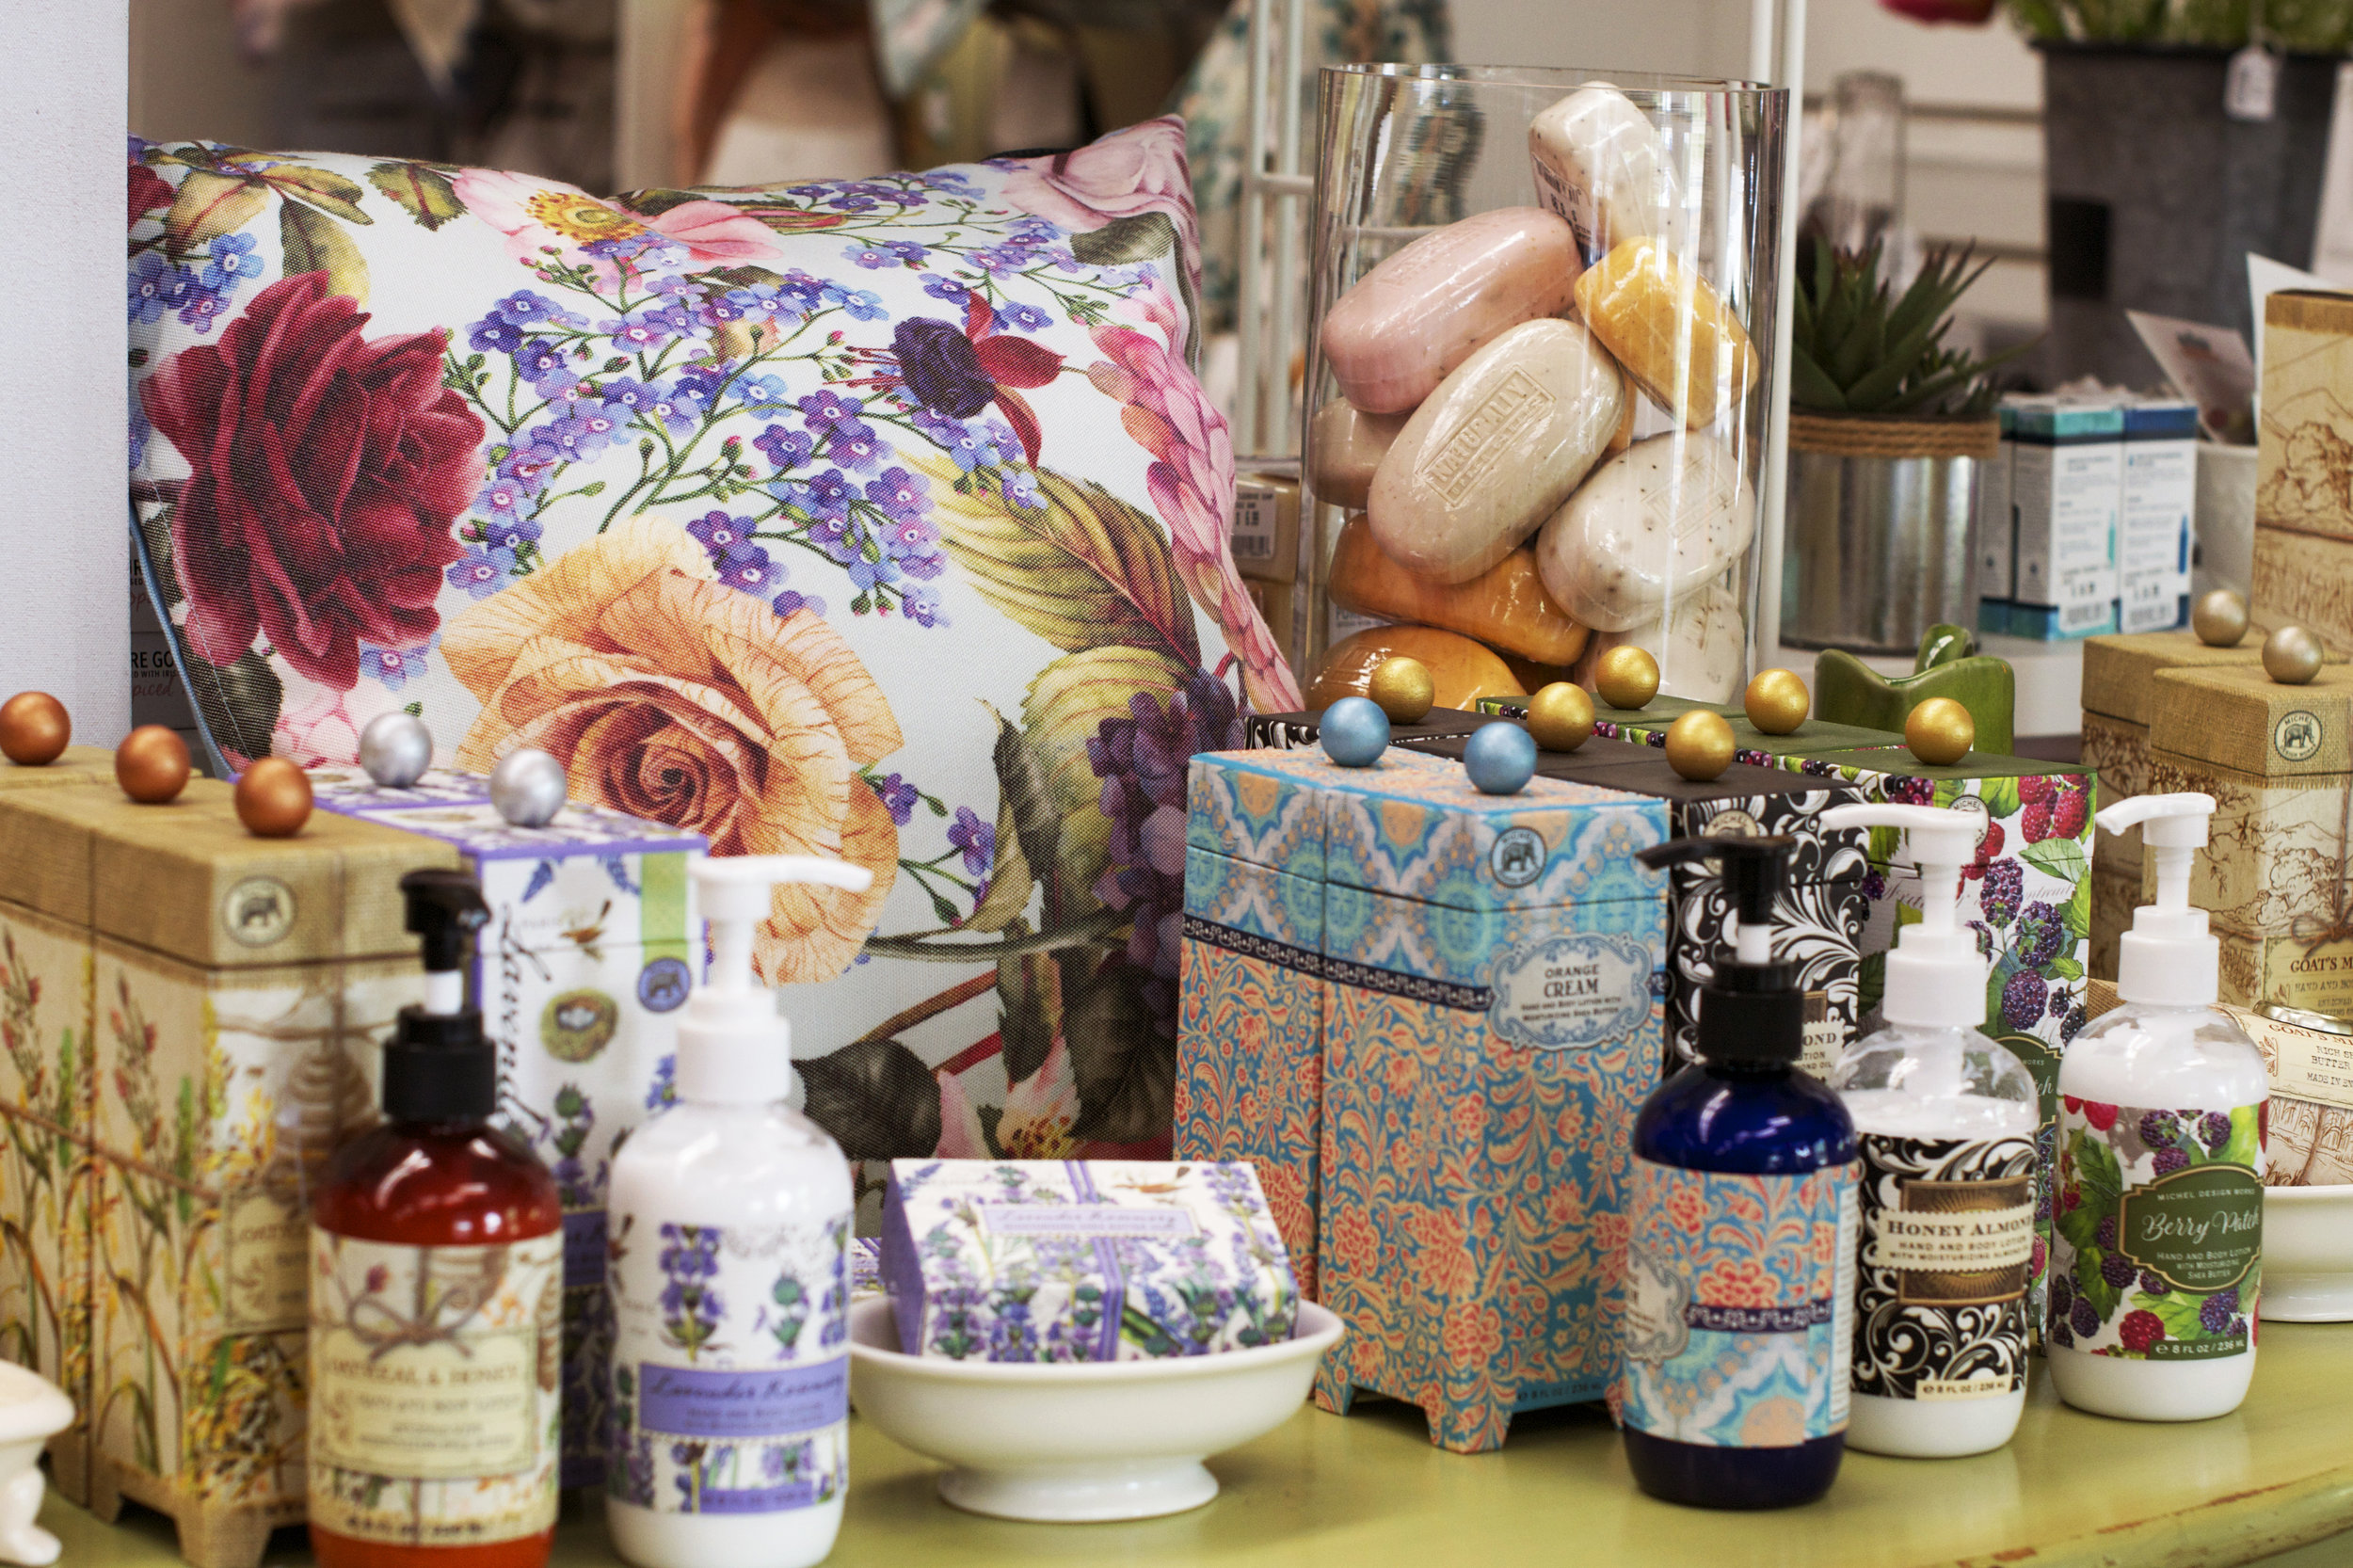 floral-pillow-pretty-soaps-and-lotions.jpg